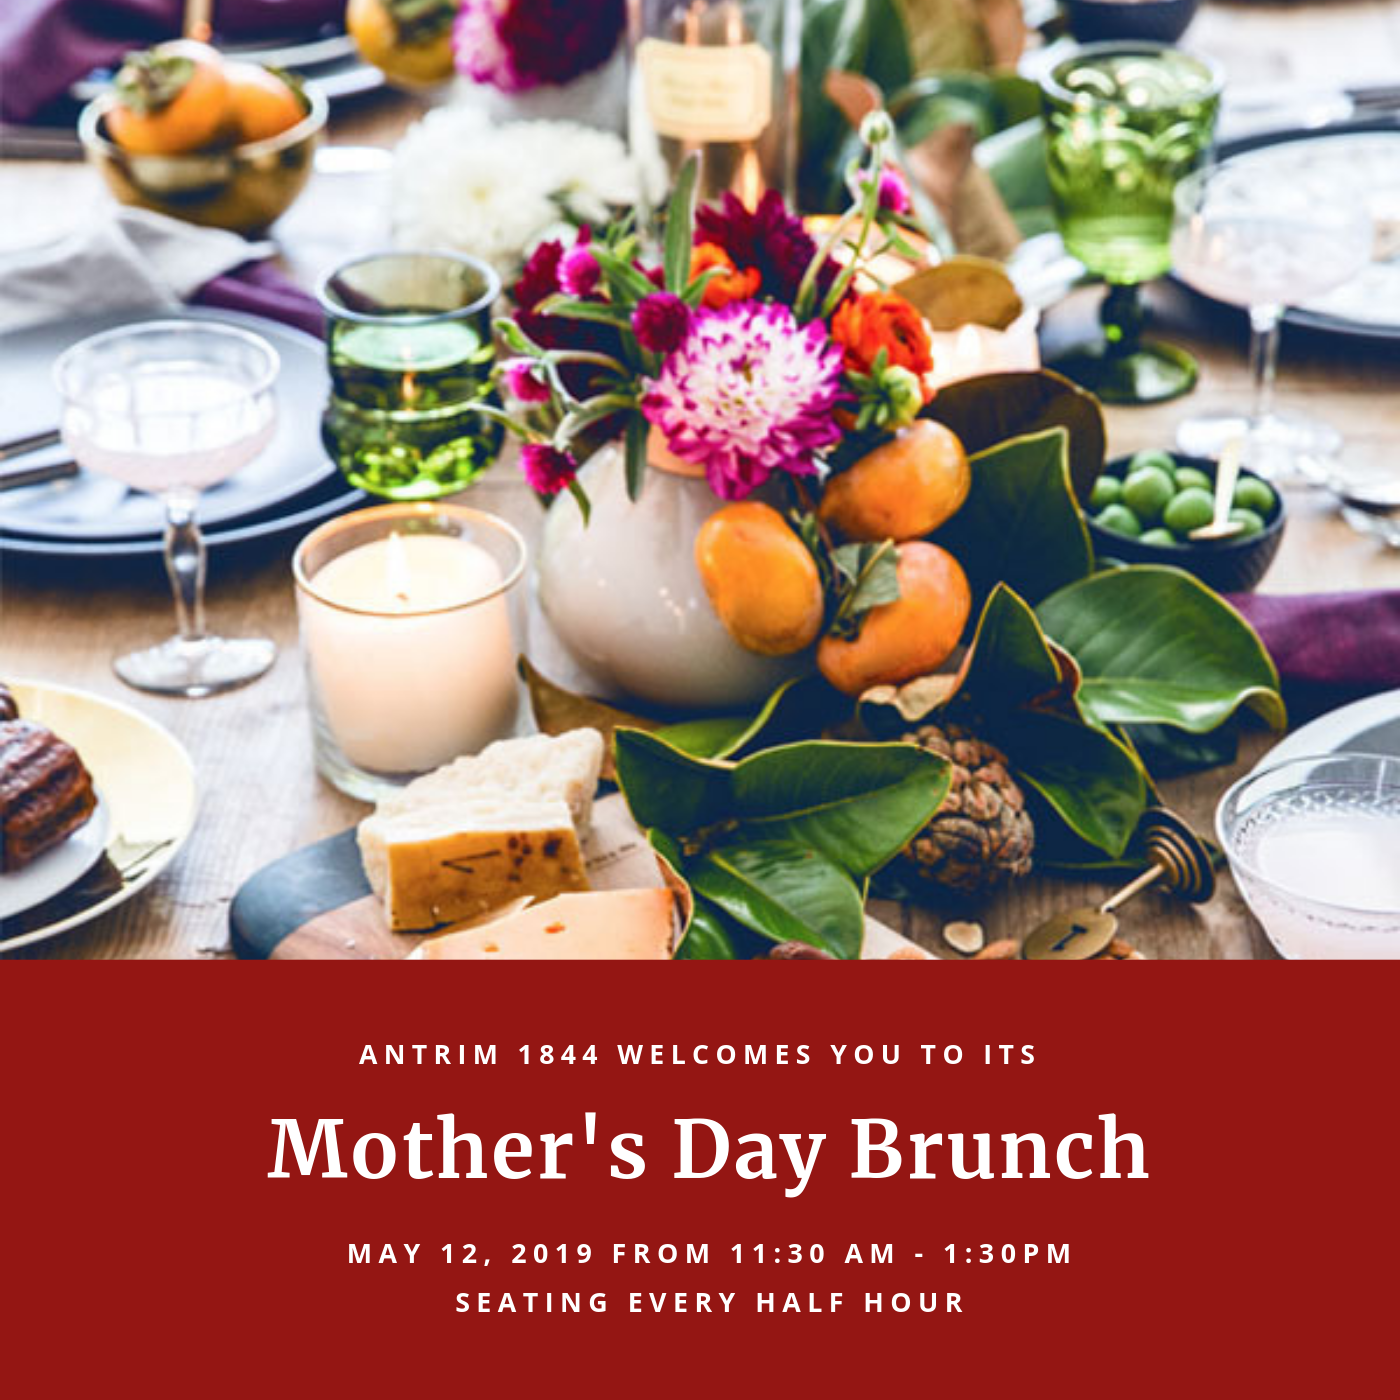 Mother's Day Brunch Antrim 1844.png